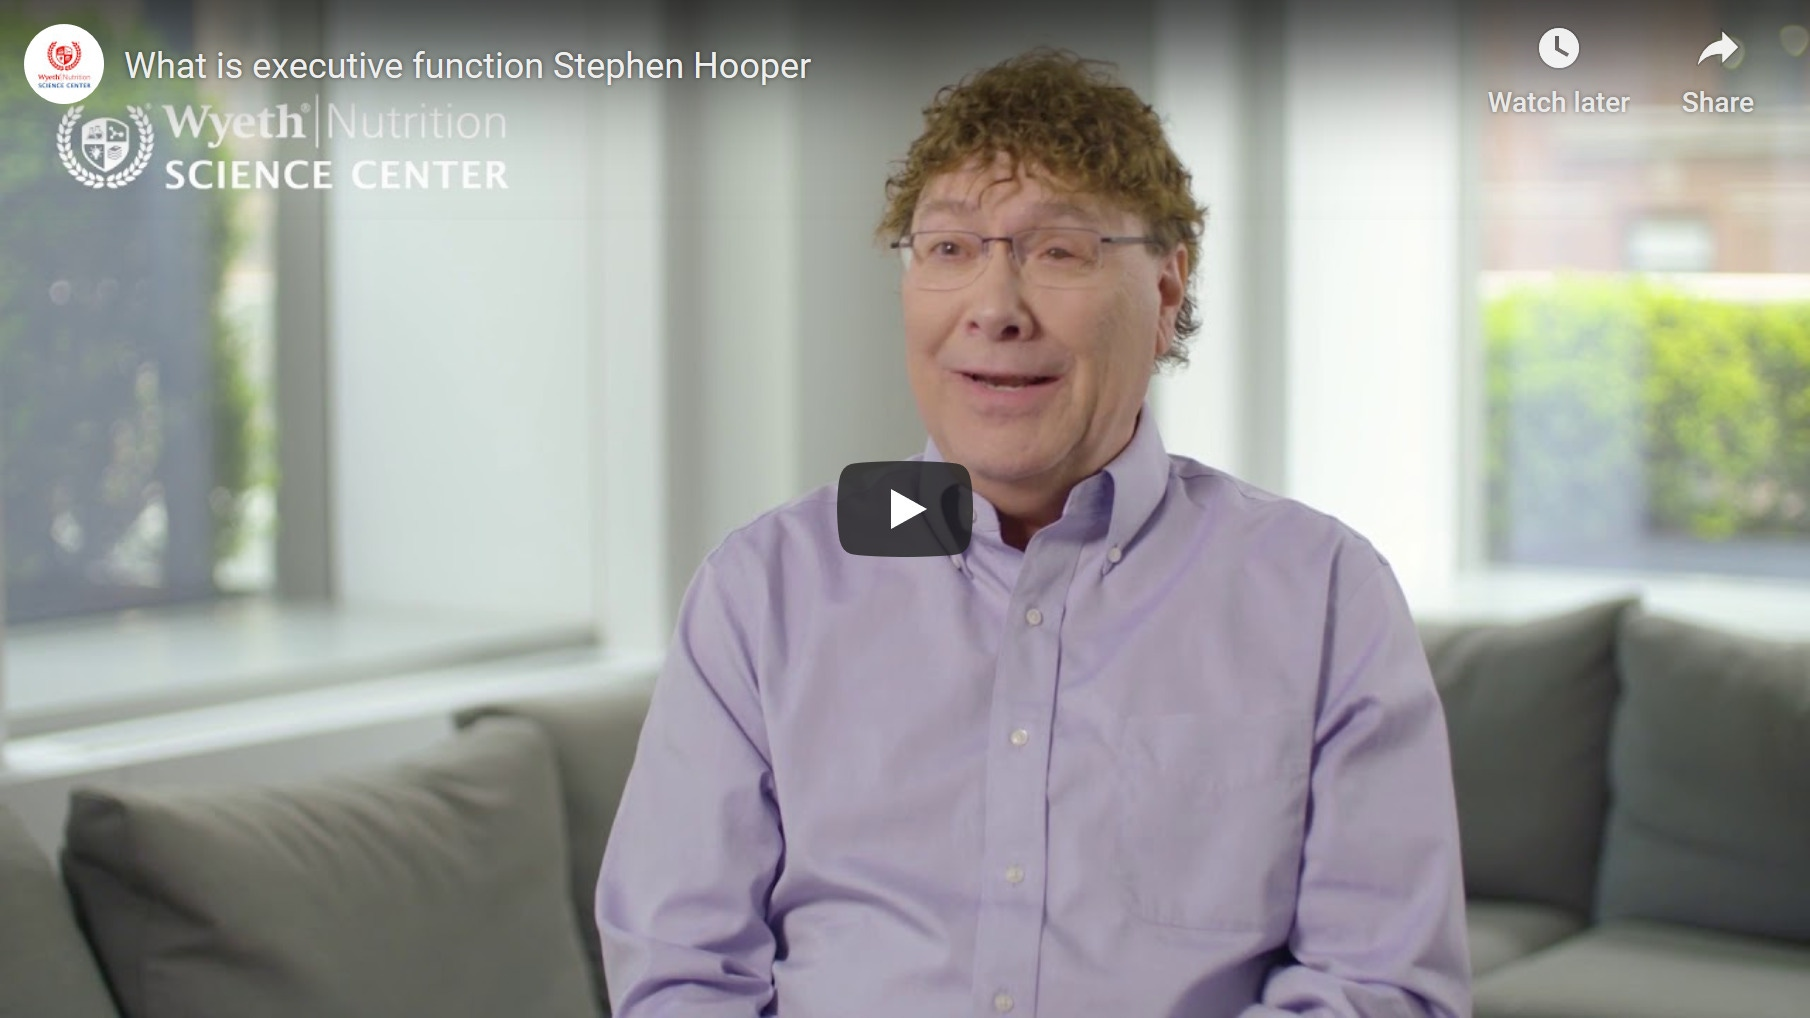 What is executive function - Prof. Stephen Hooper